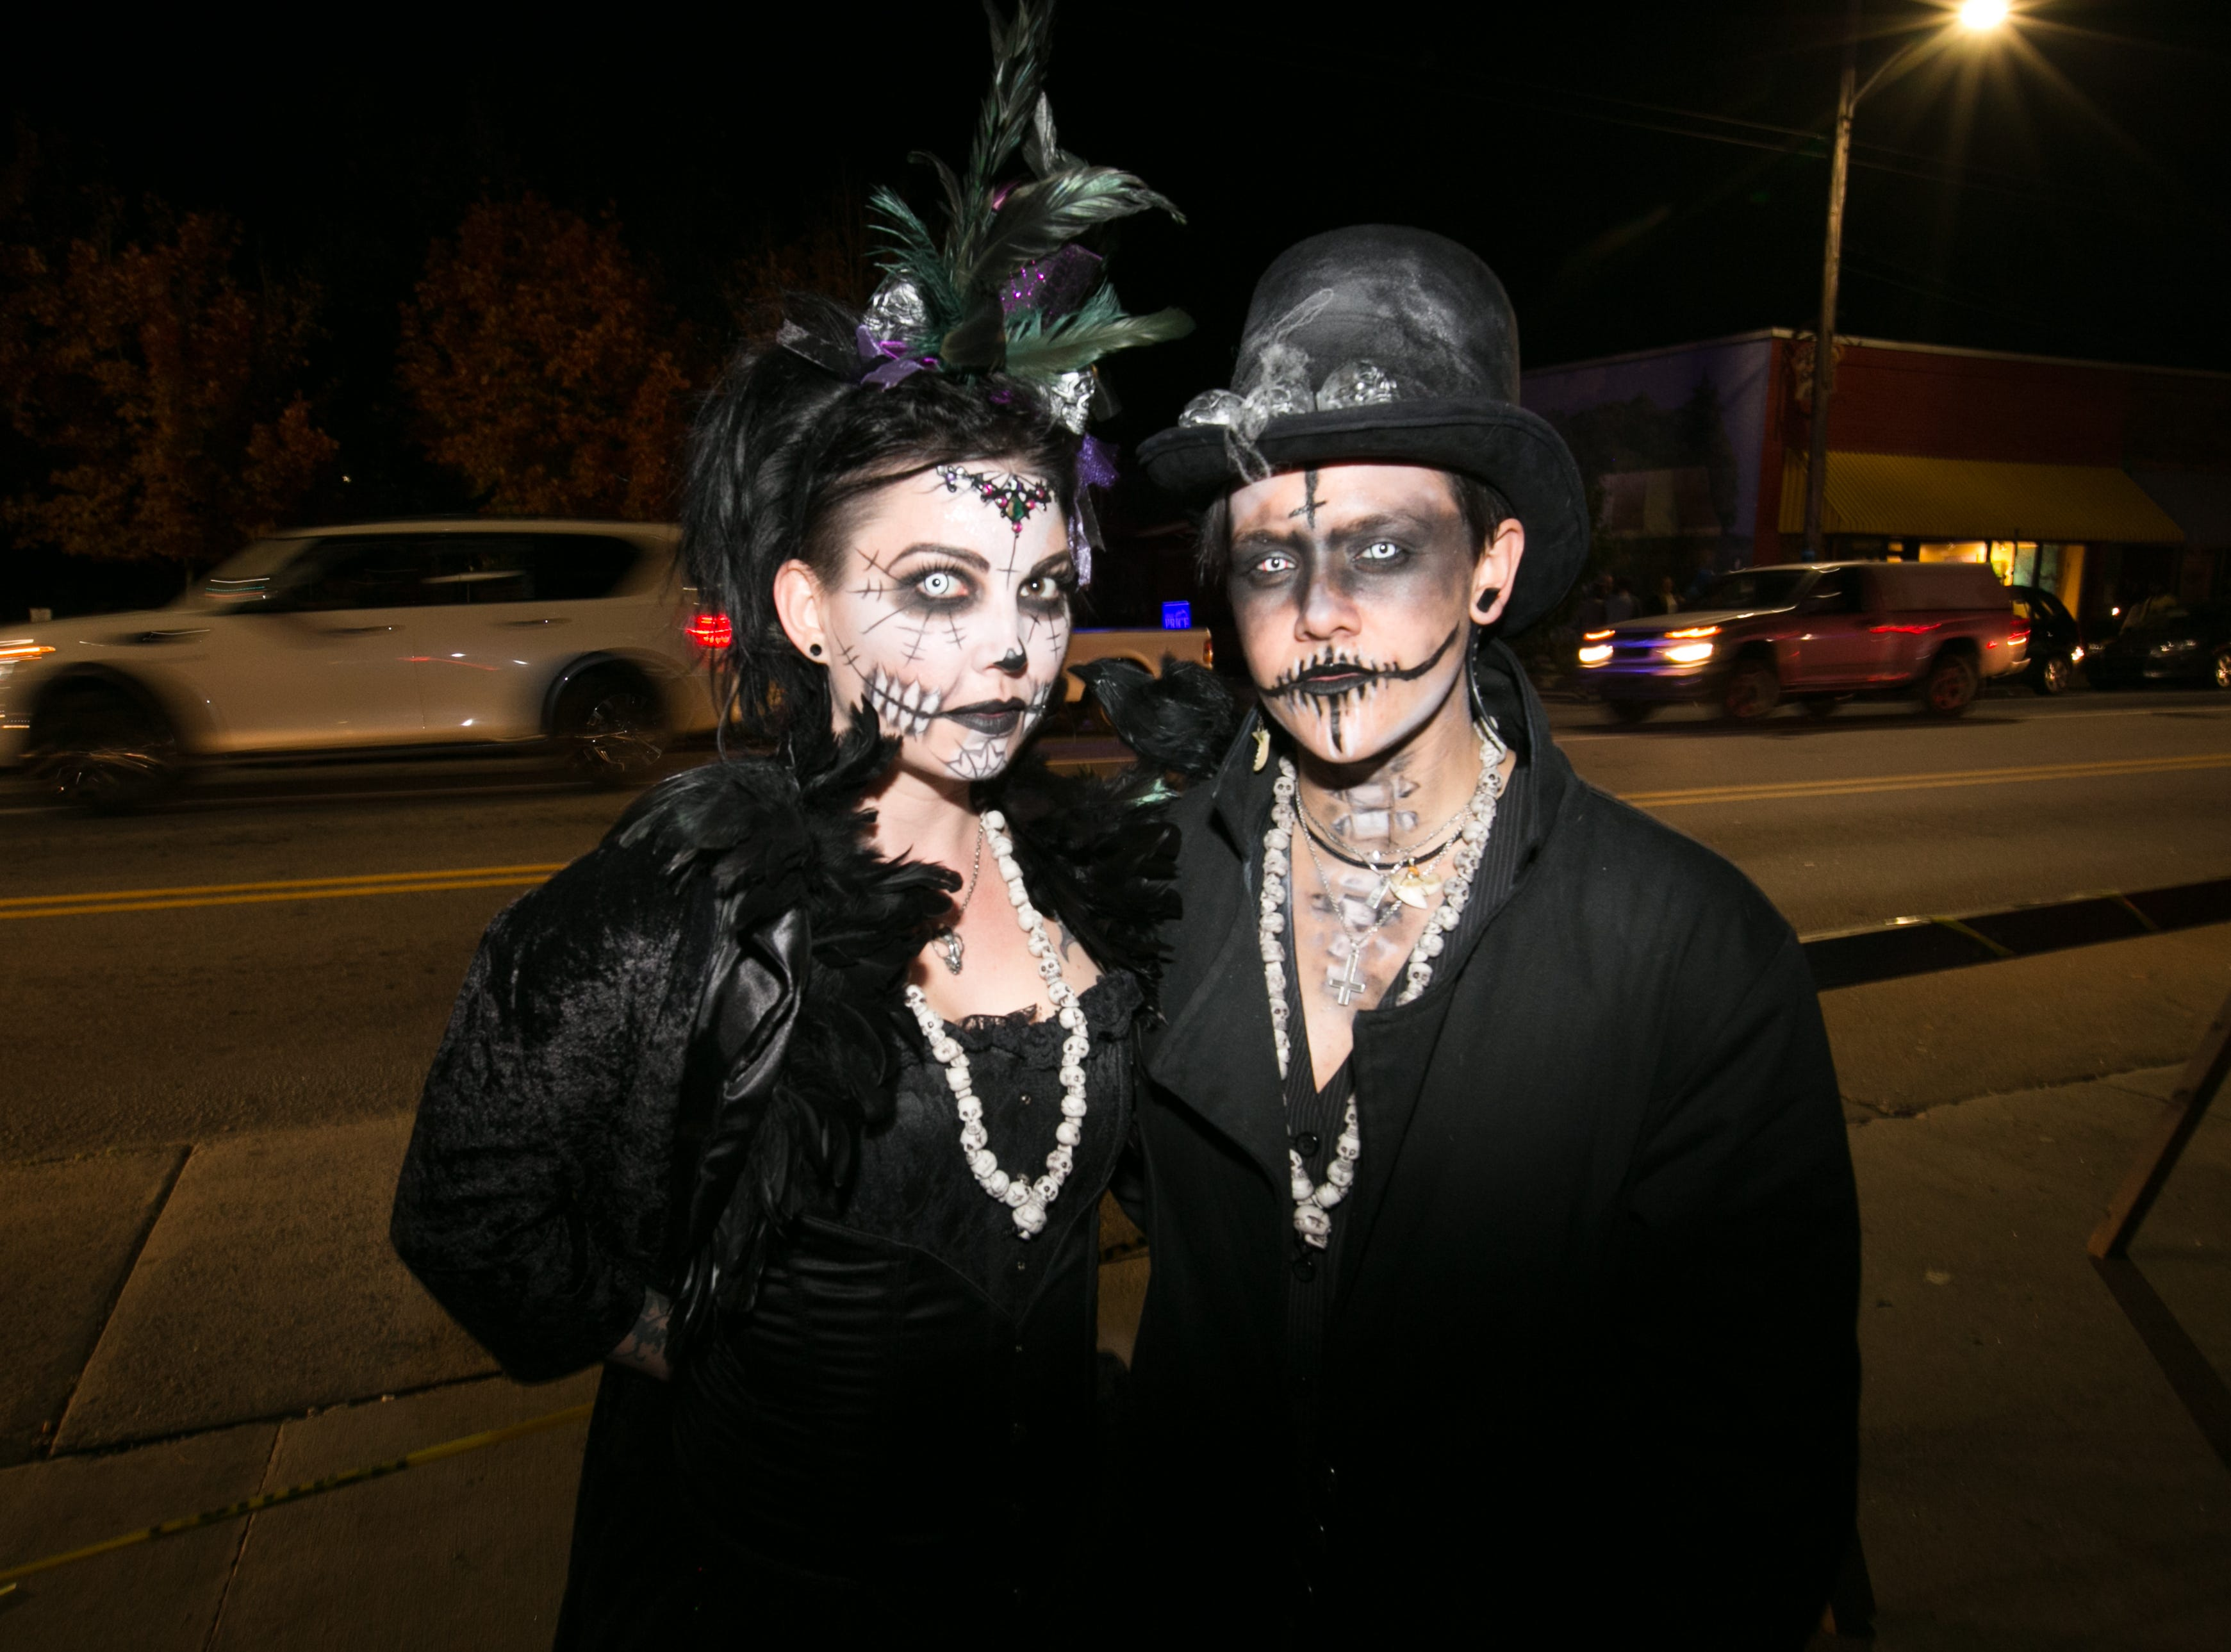 Adults and kids alike celebrate Halloween at West Asheville's Brew Pump on Oct. 31, 2018.